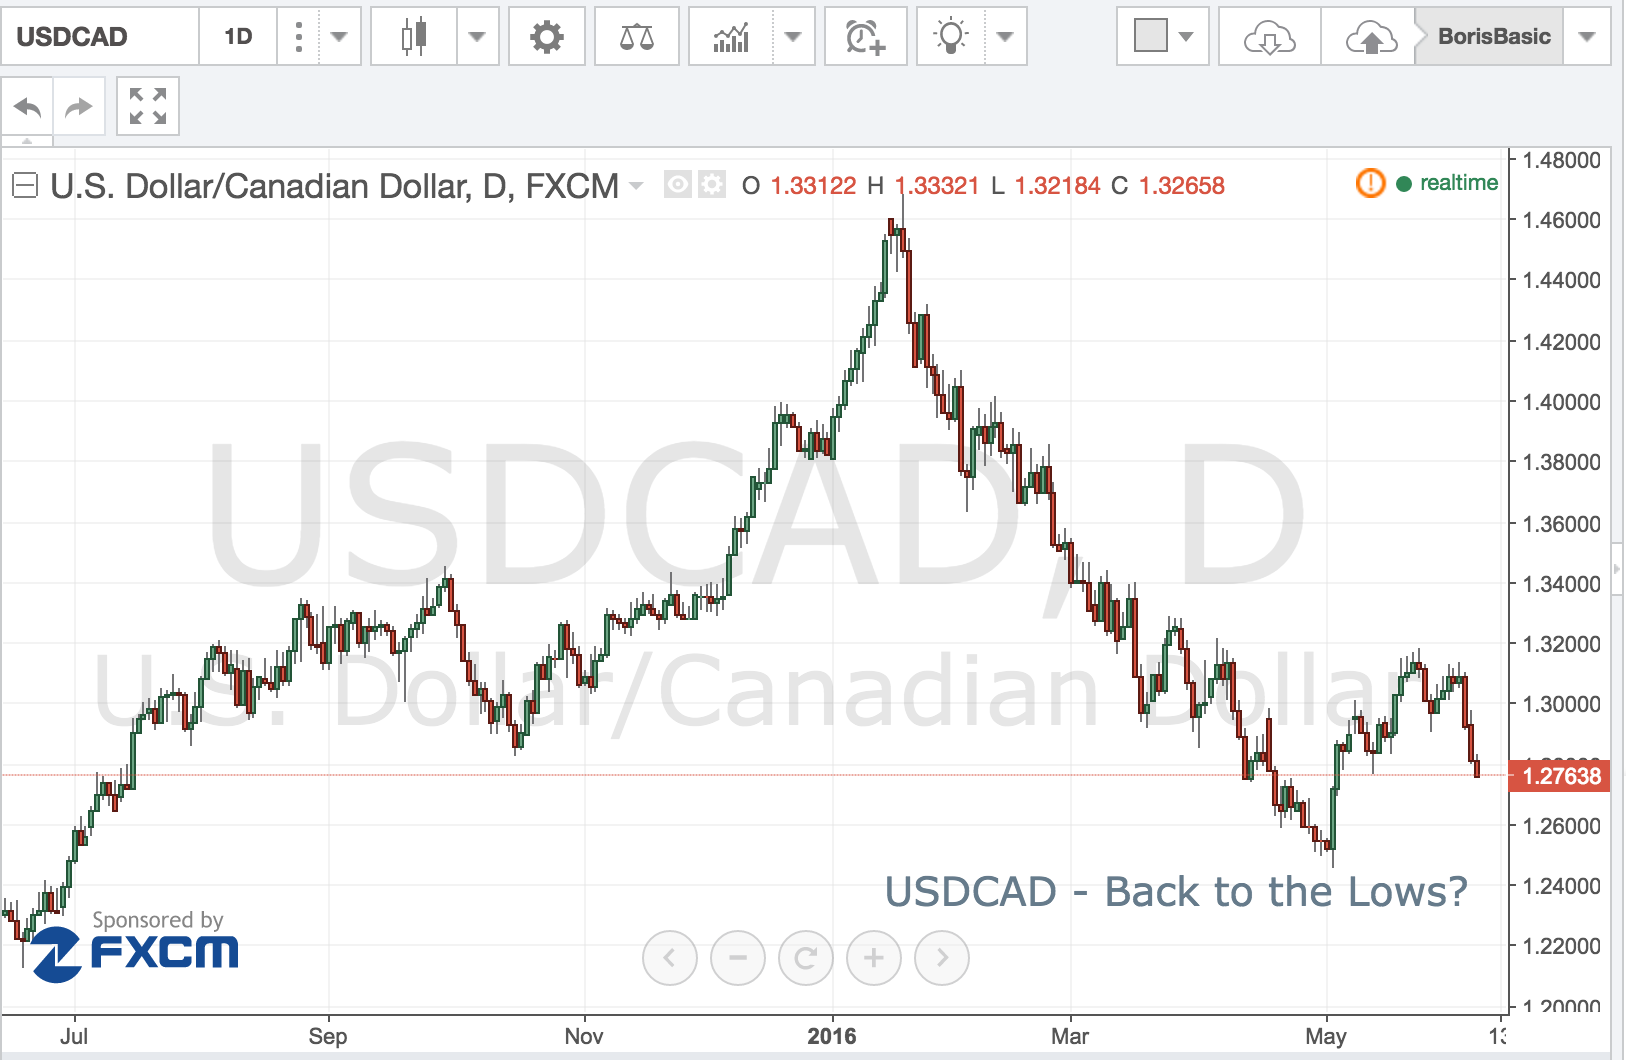 USDCAD – Back to the Lows?